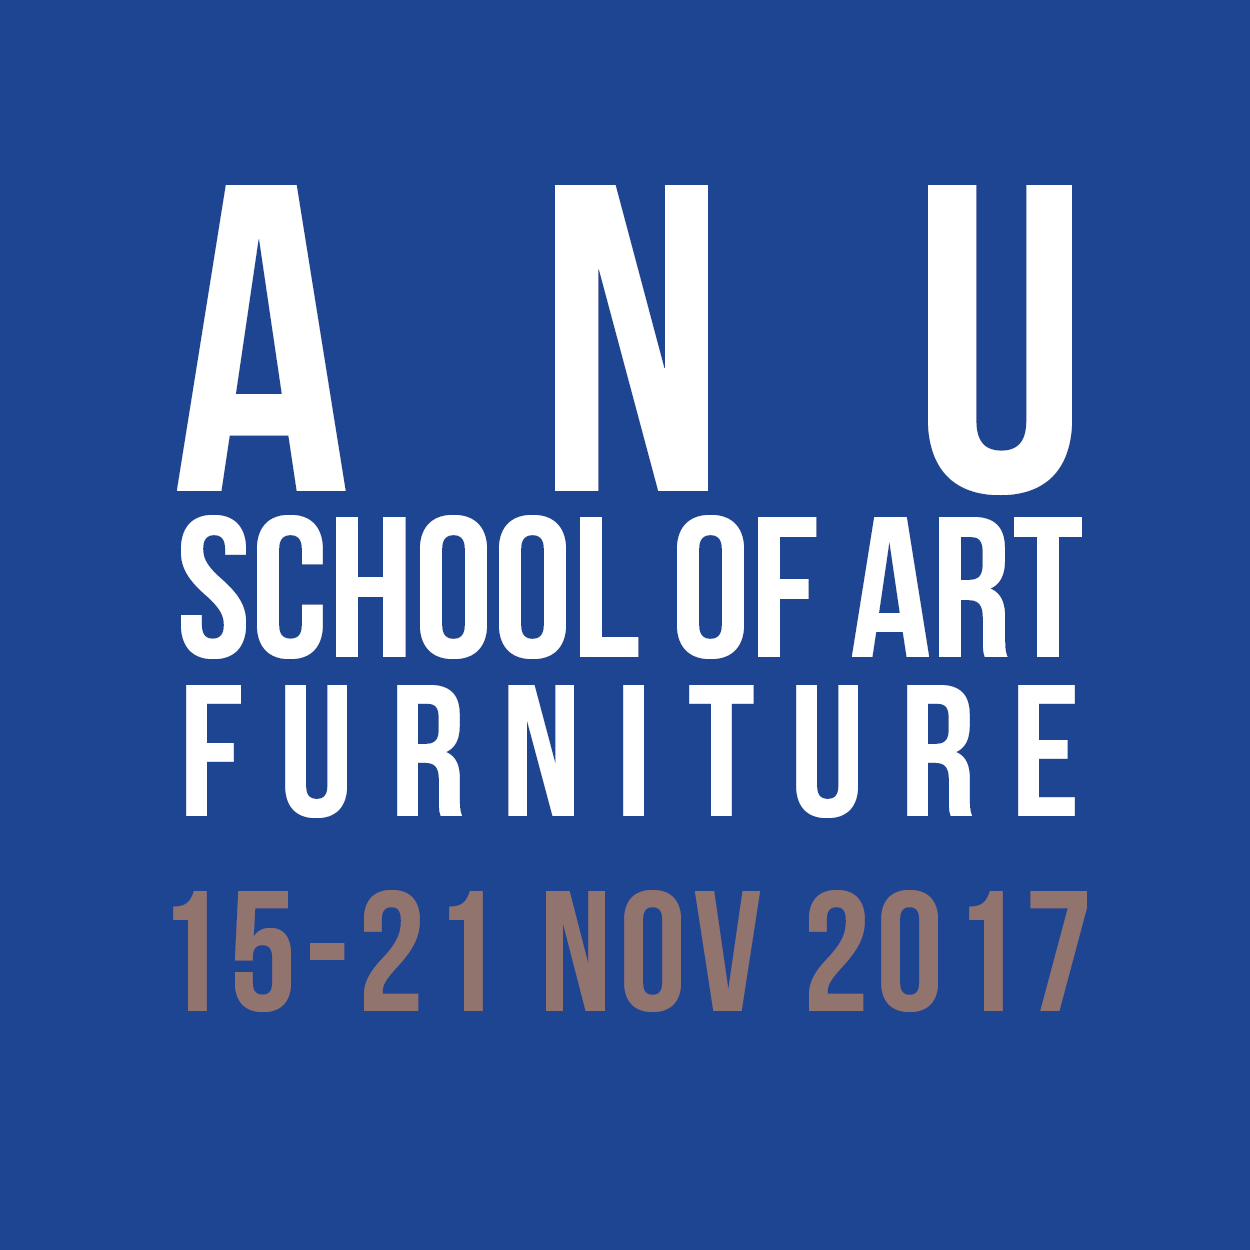 ANU School of art furniture workshop 15-21Nov